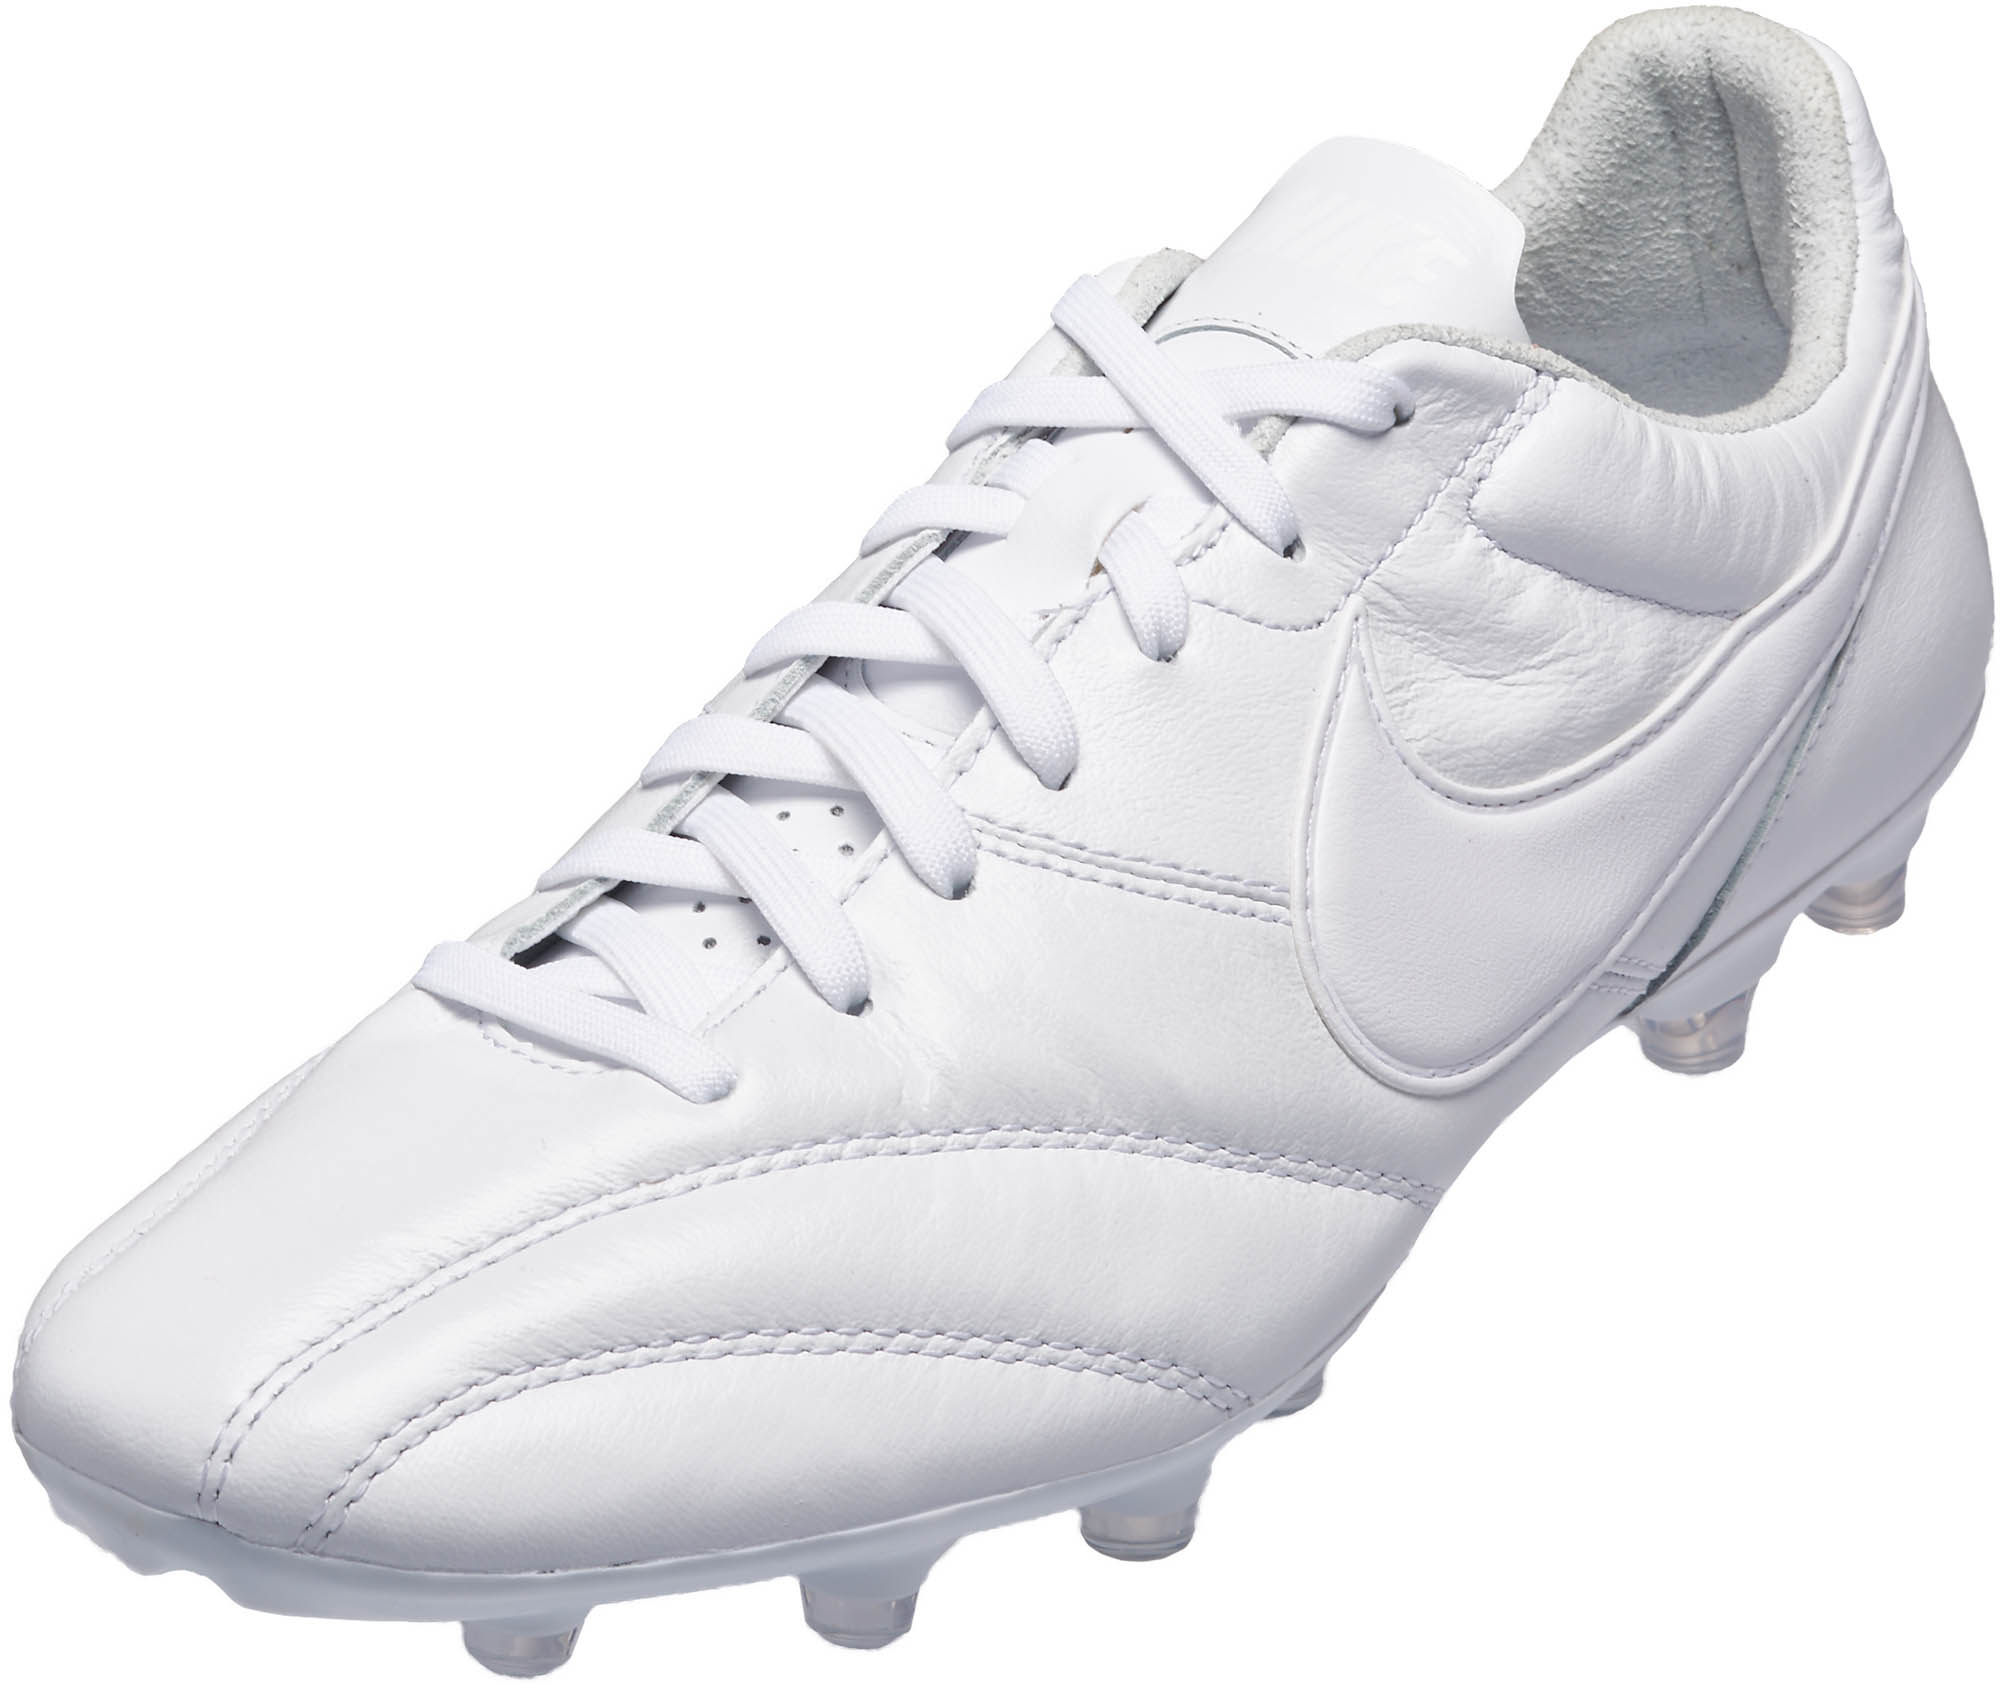 cubo Desviarse Reembolso  The Nike Premier FG - Triple White Nike Soccer Cleats